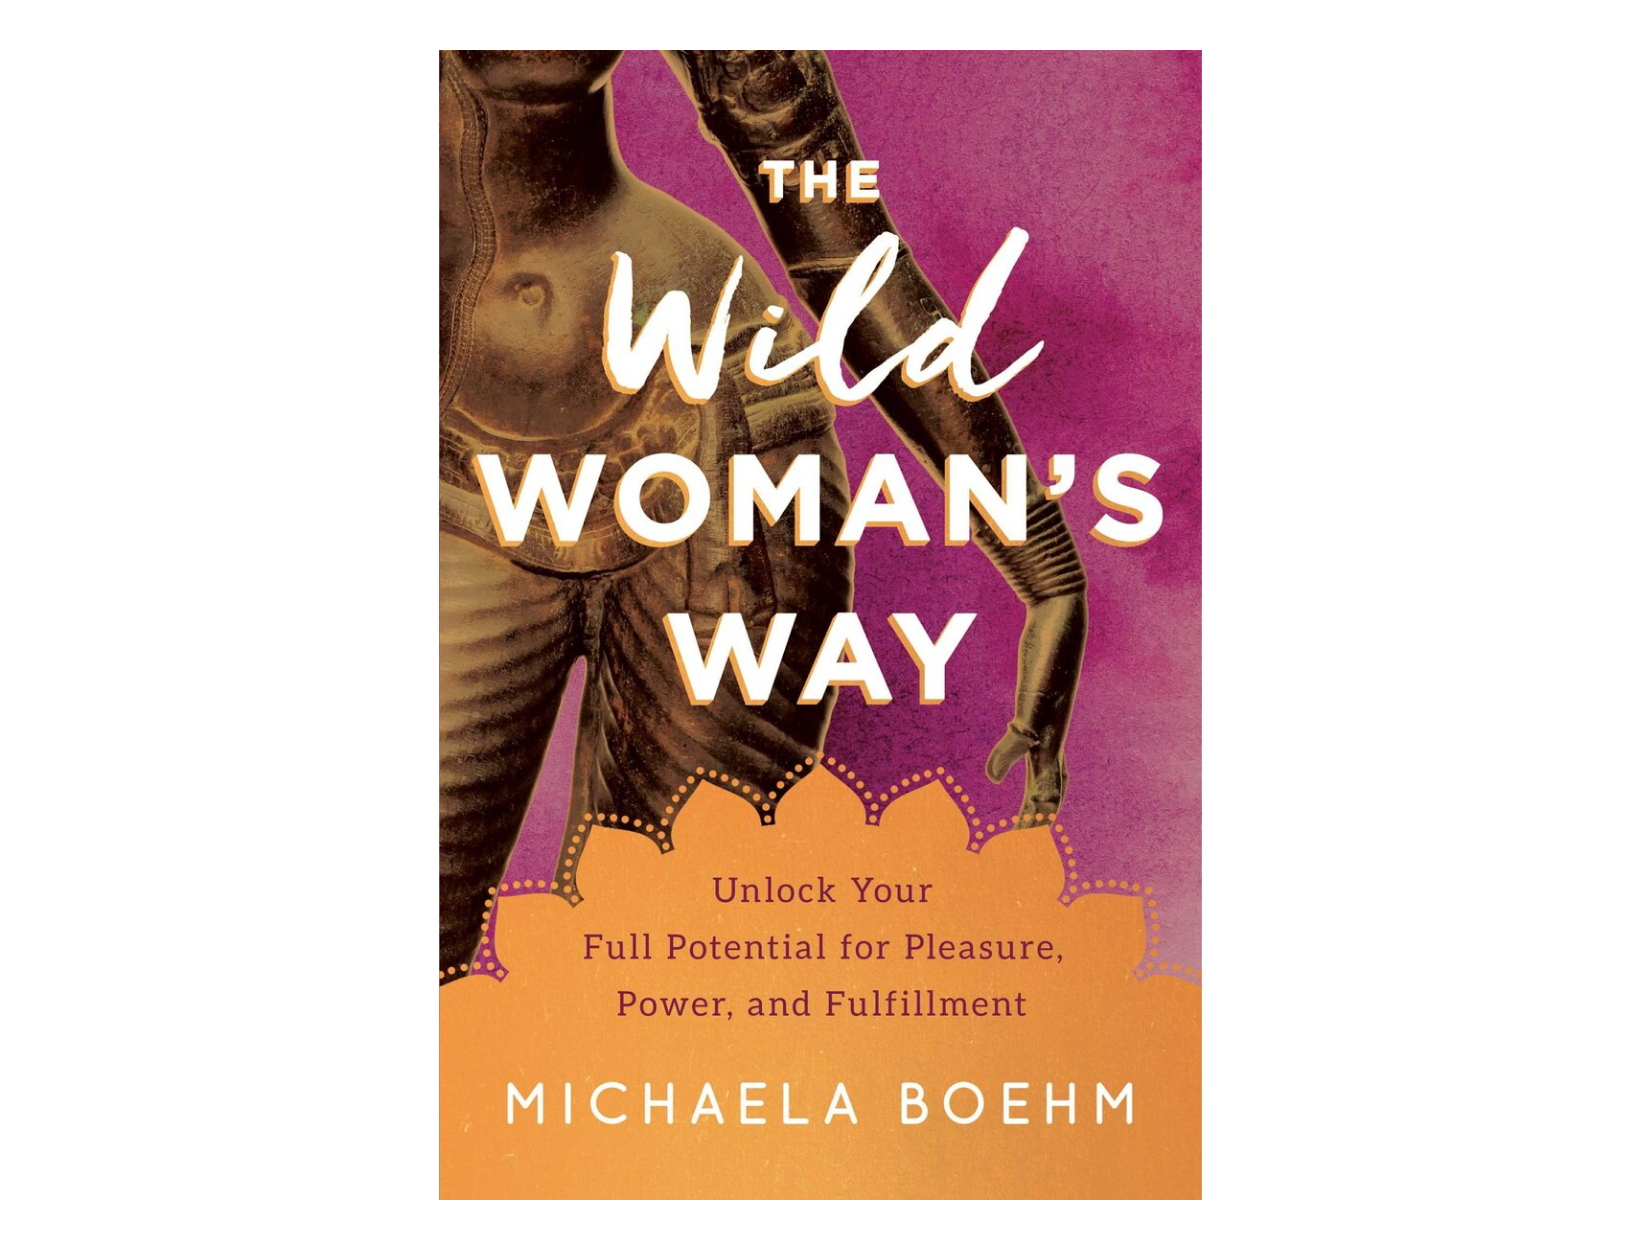 <em>The Wild Woman's Way</em> by Michaela Boehm